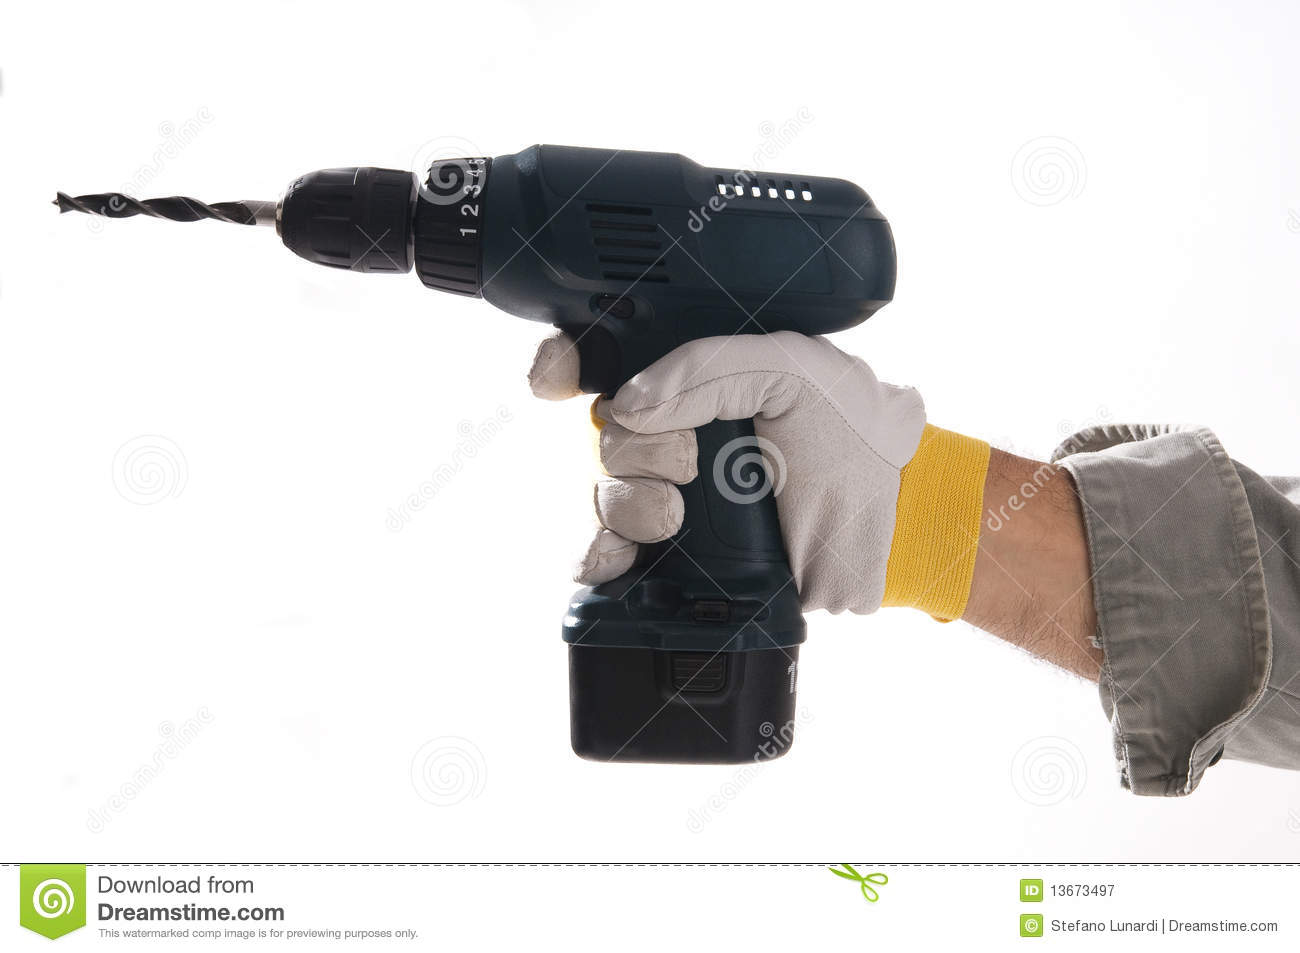 hand drilling machine. royalty-free stock photo. download hand holding drilling machine